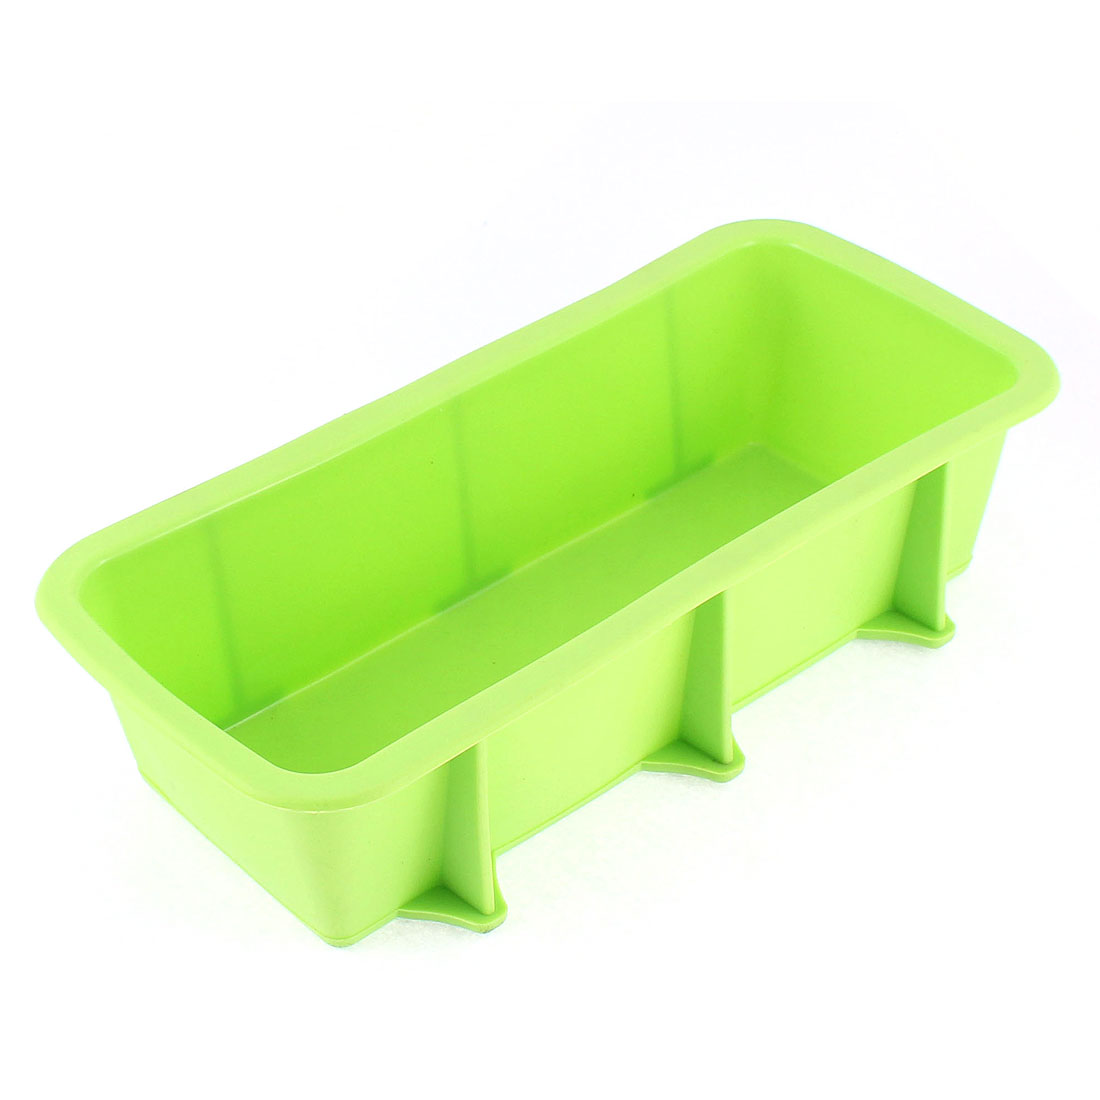 Silicone Flat Bottom Toast Bread Baking Mold Mould Pan Maker Green 25 x 12.5cm